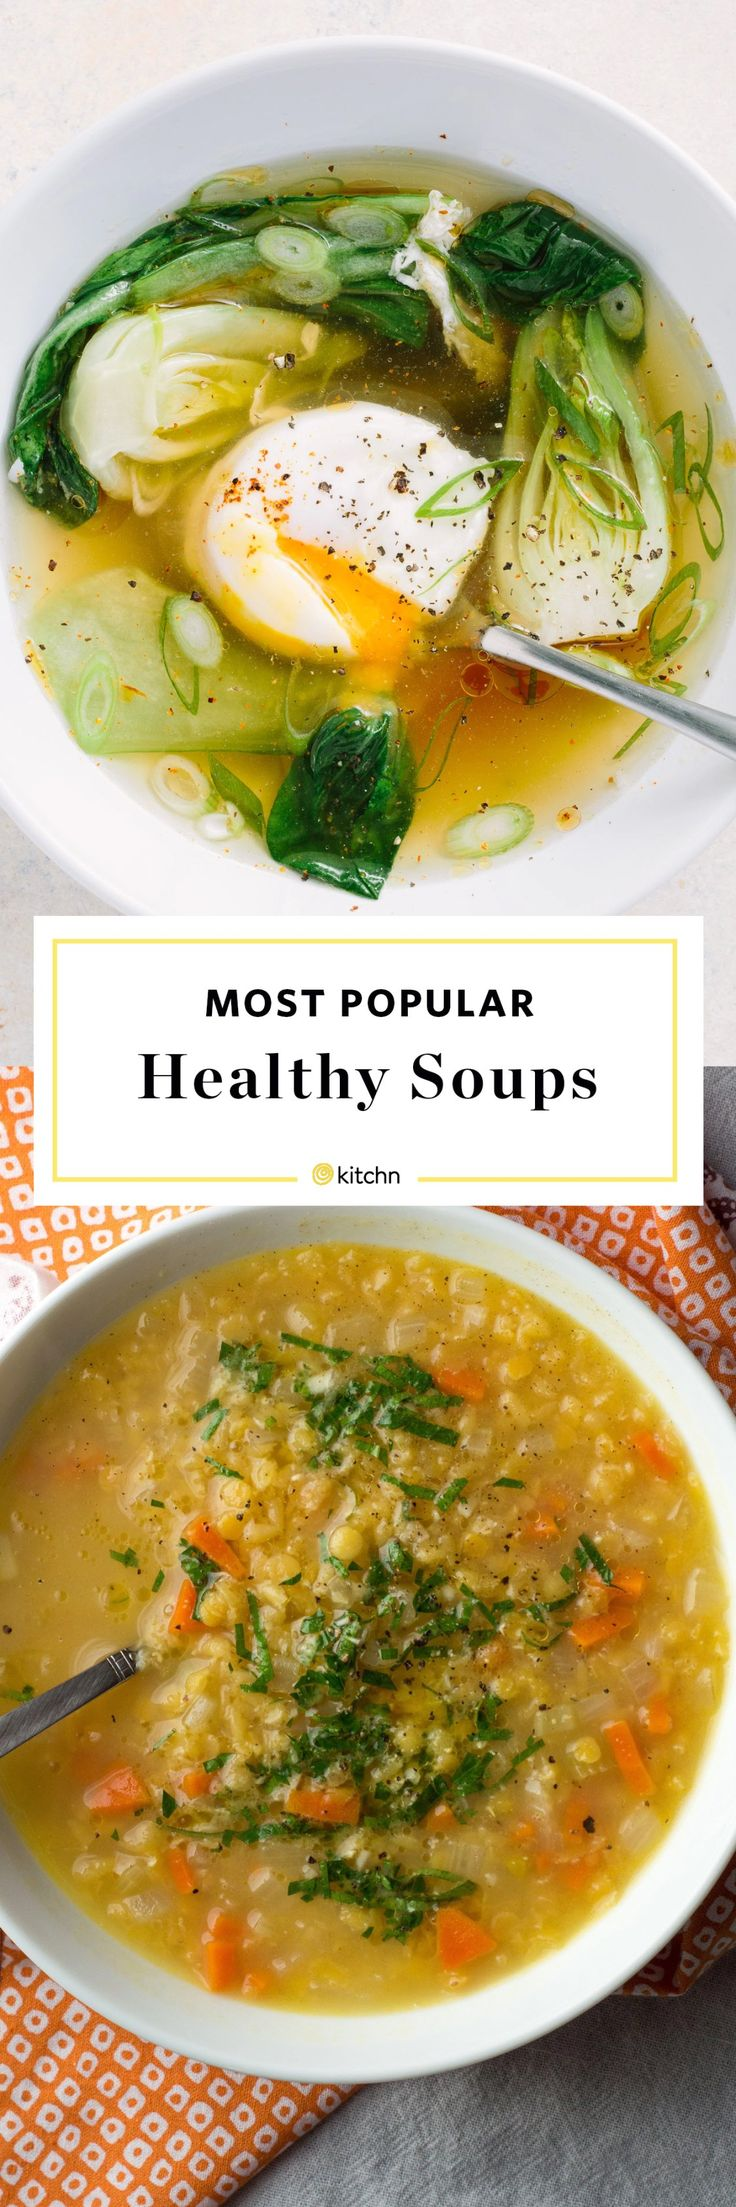 10 Of Our Favorite Light, Healthy, and Satisfying Soups. Looking for Recipes and ideas for hearty weeknight meals and dinners - or light and easy lunches? These simple soups range from vegetarian with plant packed proteins like beans or lentils, to chicken zoodle. There's even one with ground beef in sausage and some you can cook in crockpots or slow cookers.  Low in calories and high in flavor!